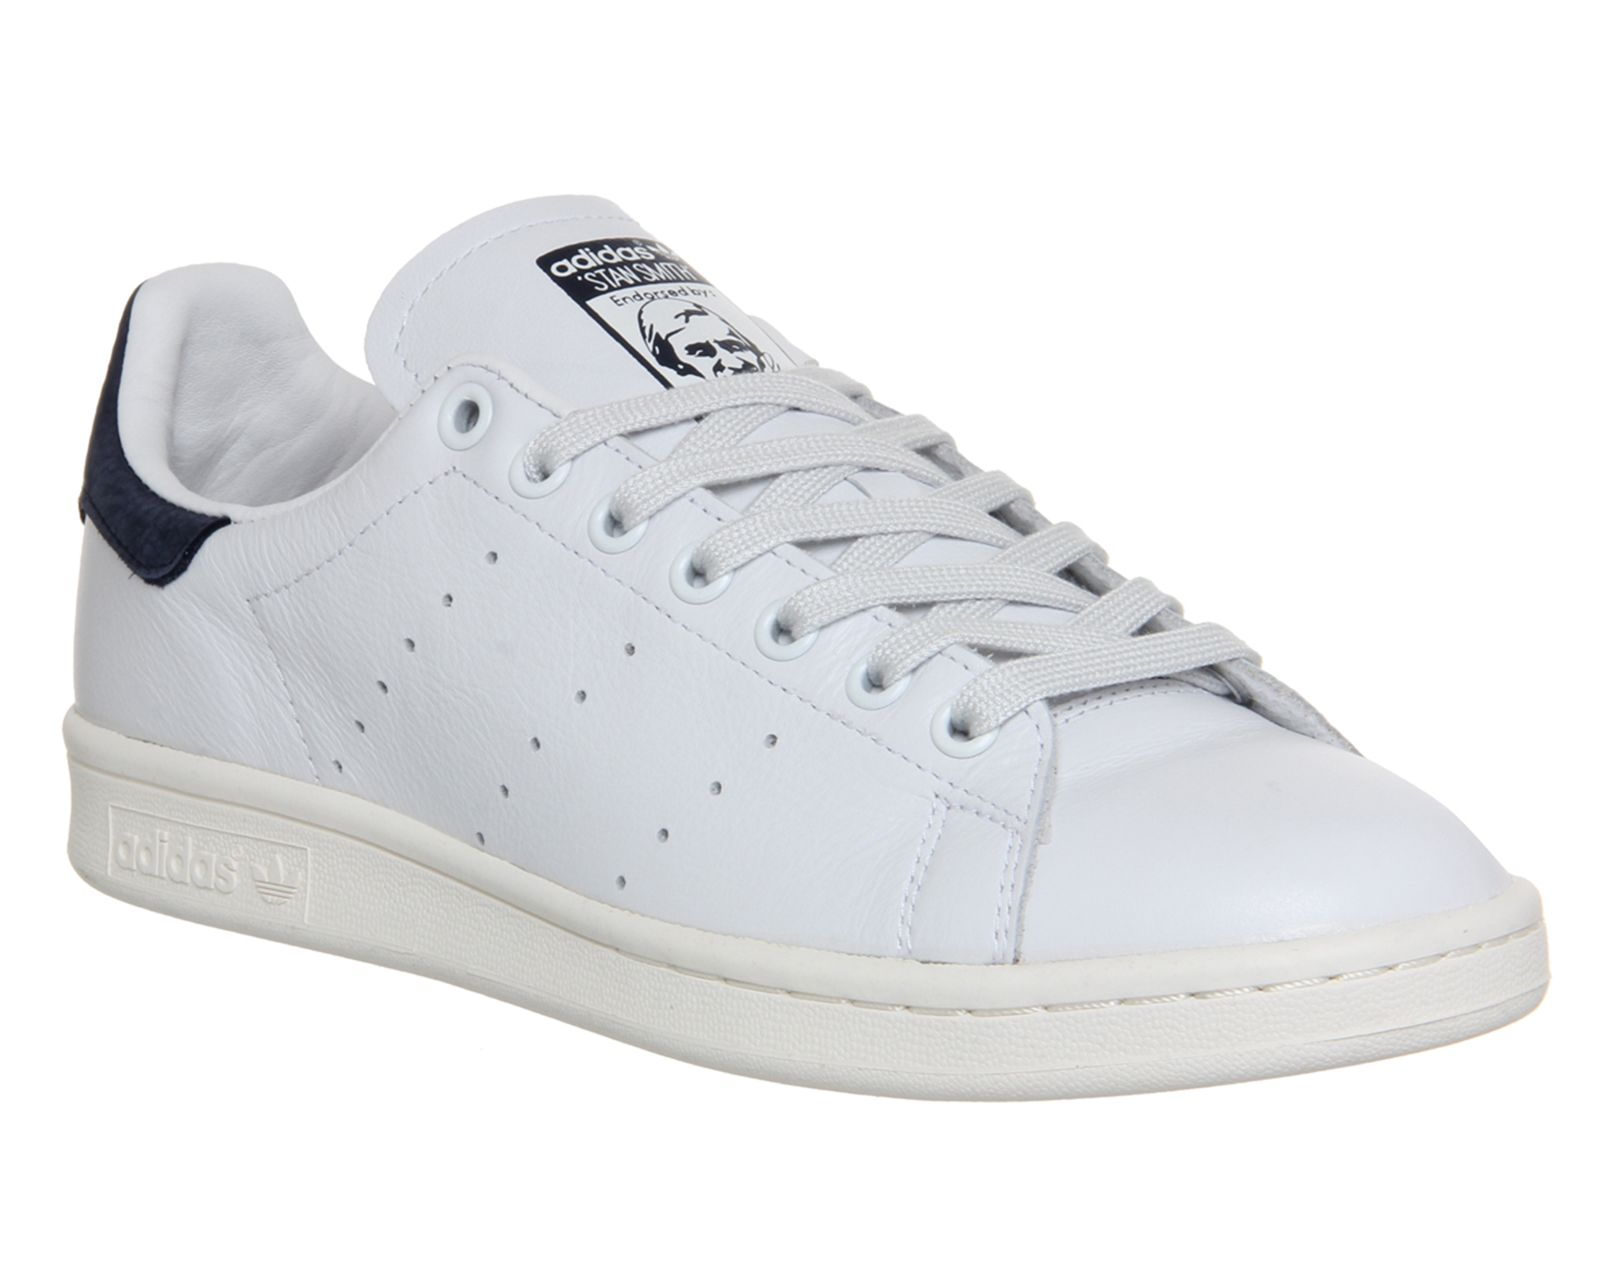 buy popular 924e0 058a7 Adidas Stan Smith Neo White Cobalt Blue - Unisex Sports ...